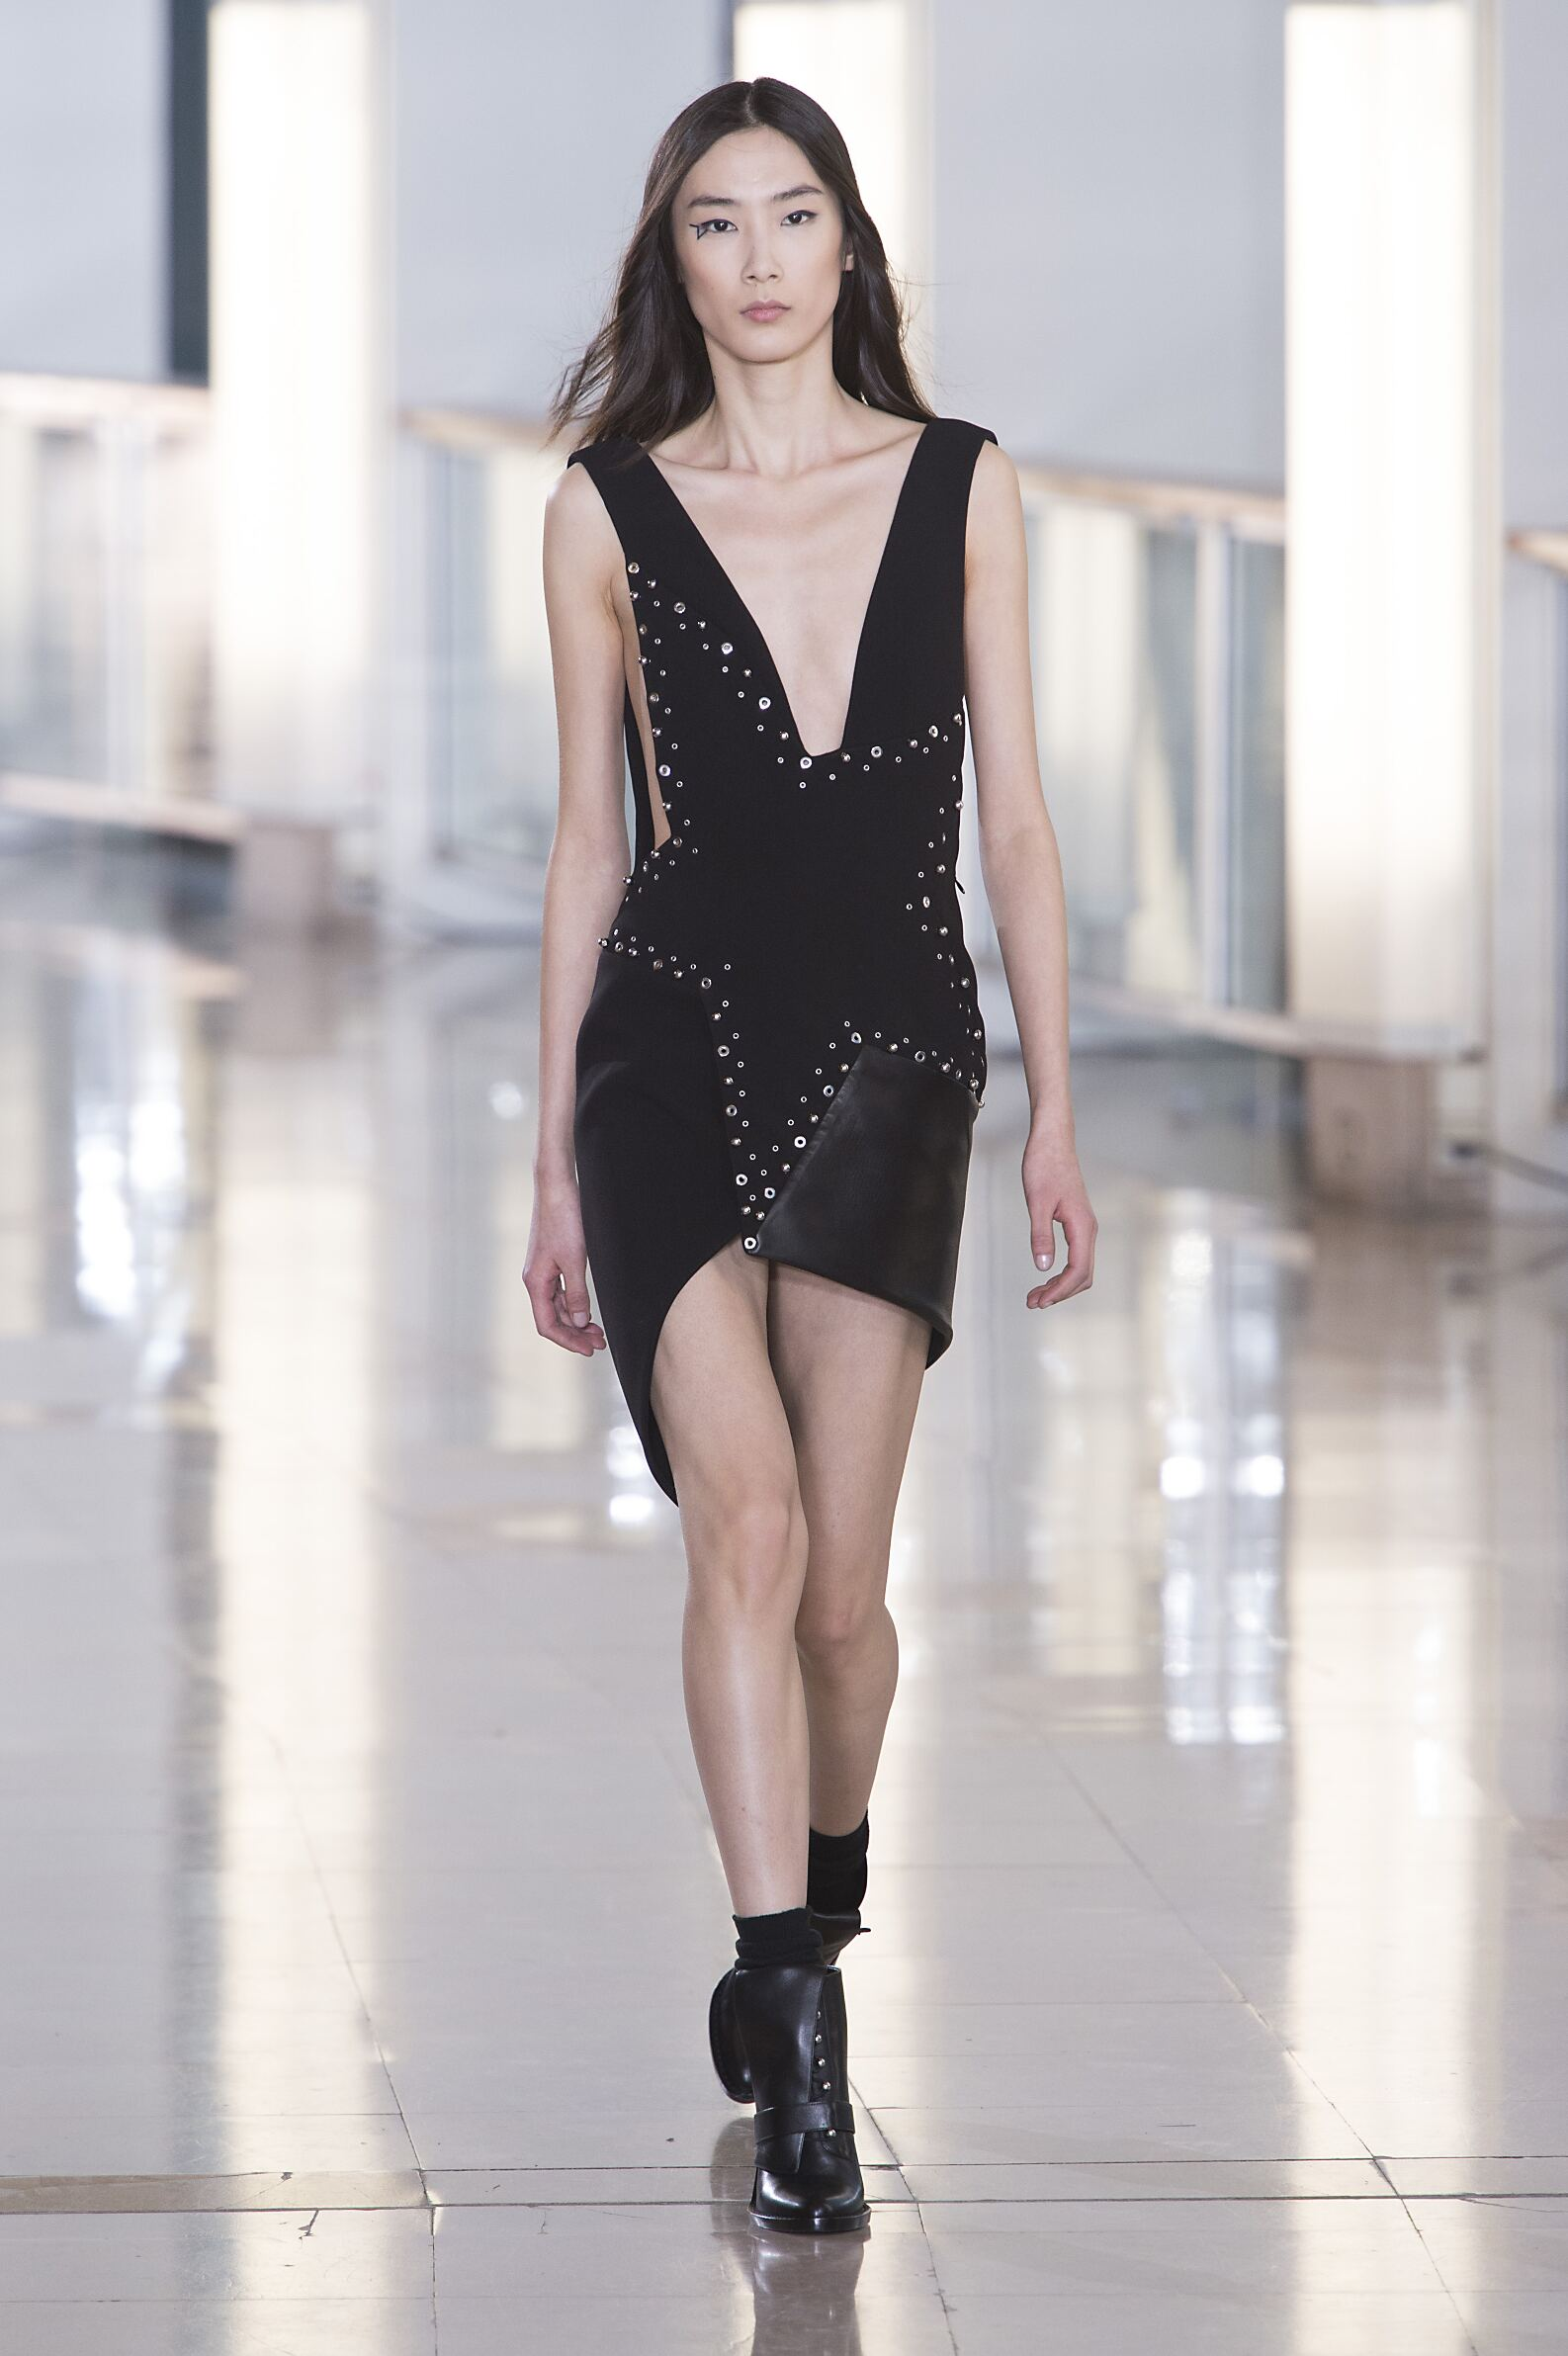 Catwalk Anthony Vaccarello Womenswear Collection Winter 2015